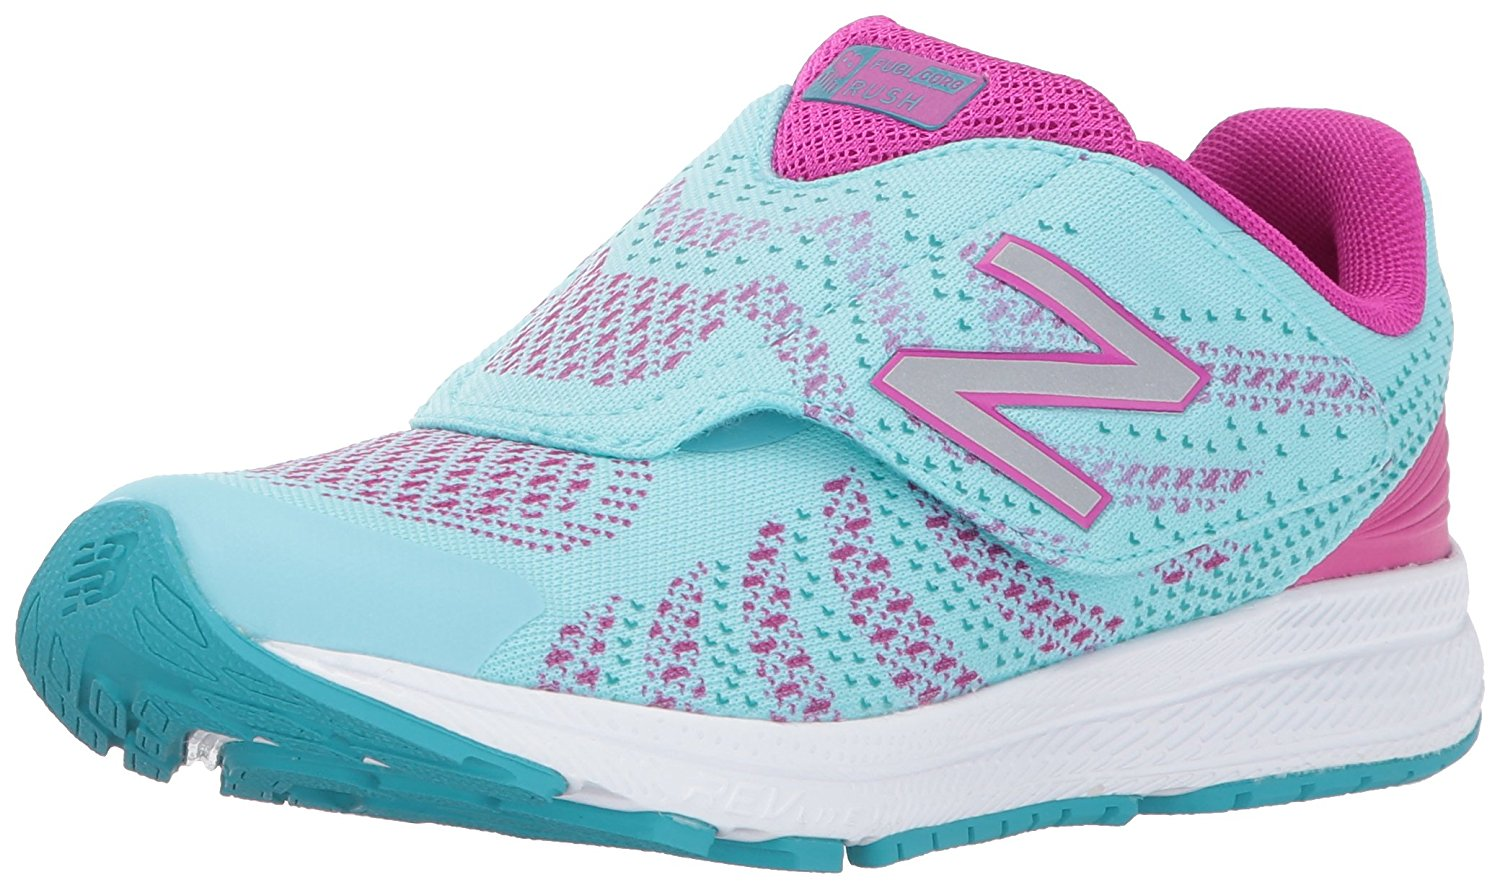 New Balance Girls kvrusvll Low Top Lace Up Walking Shoes Blue Size 8W